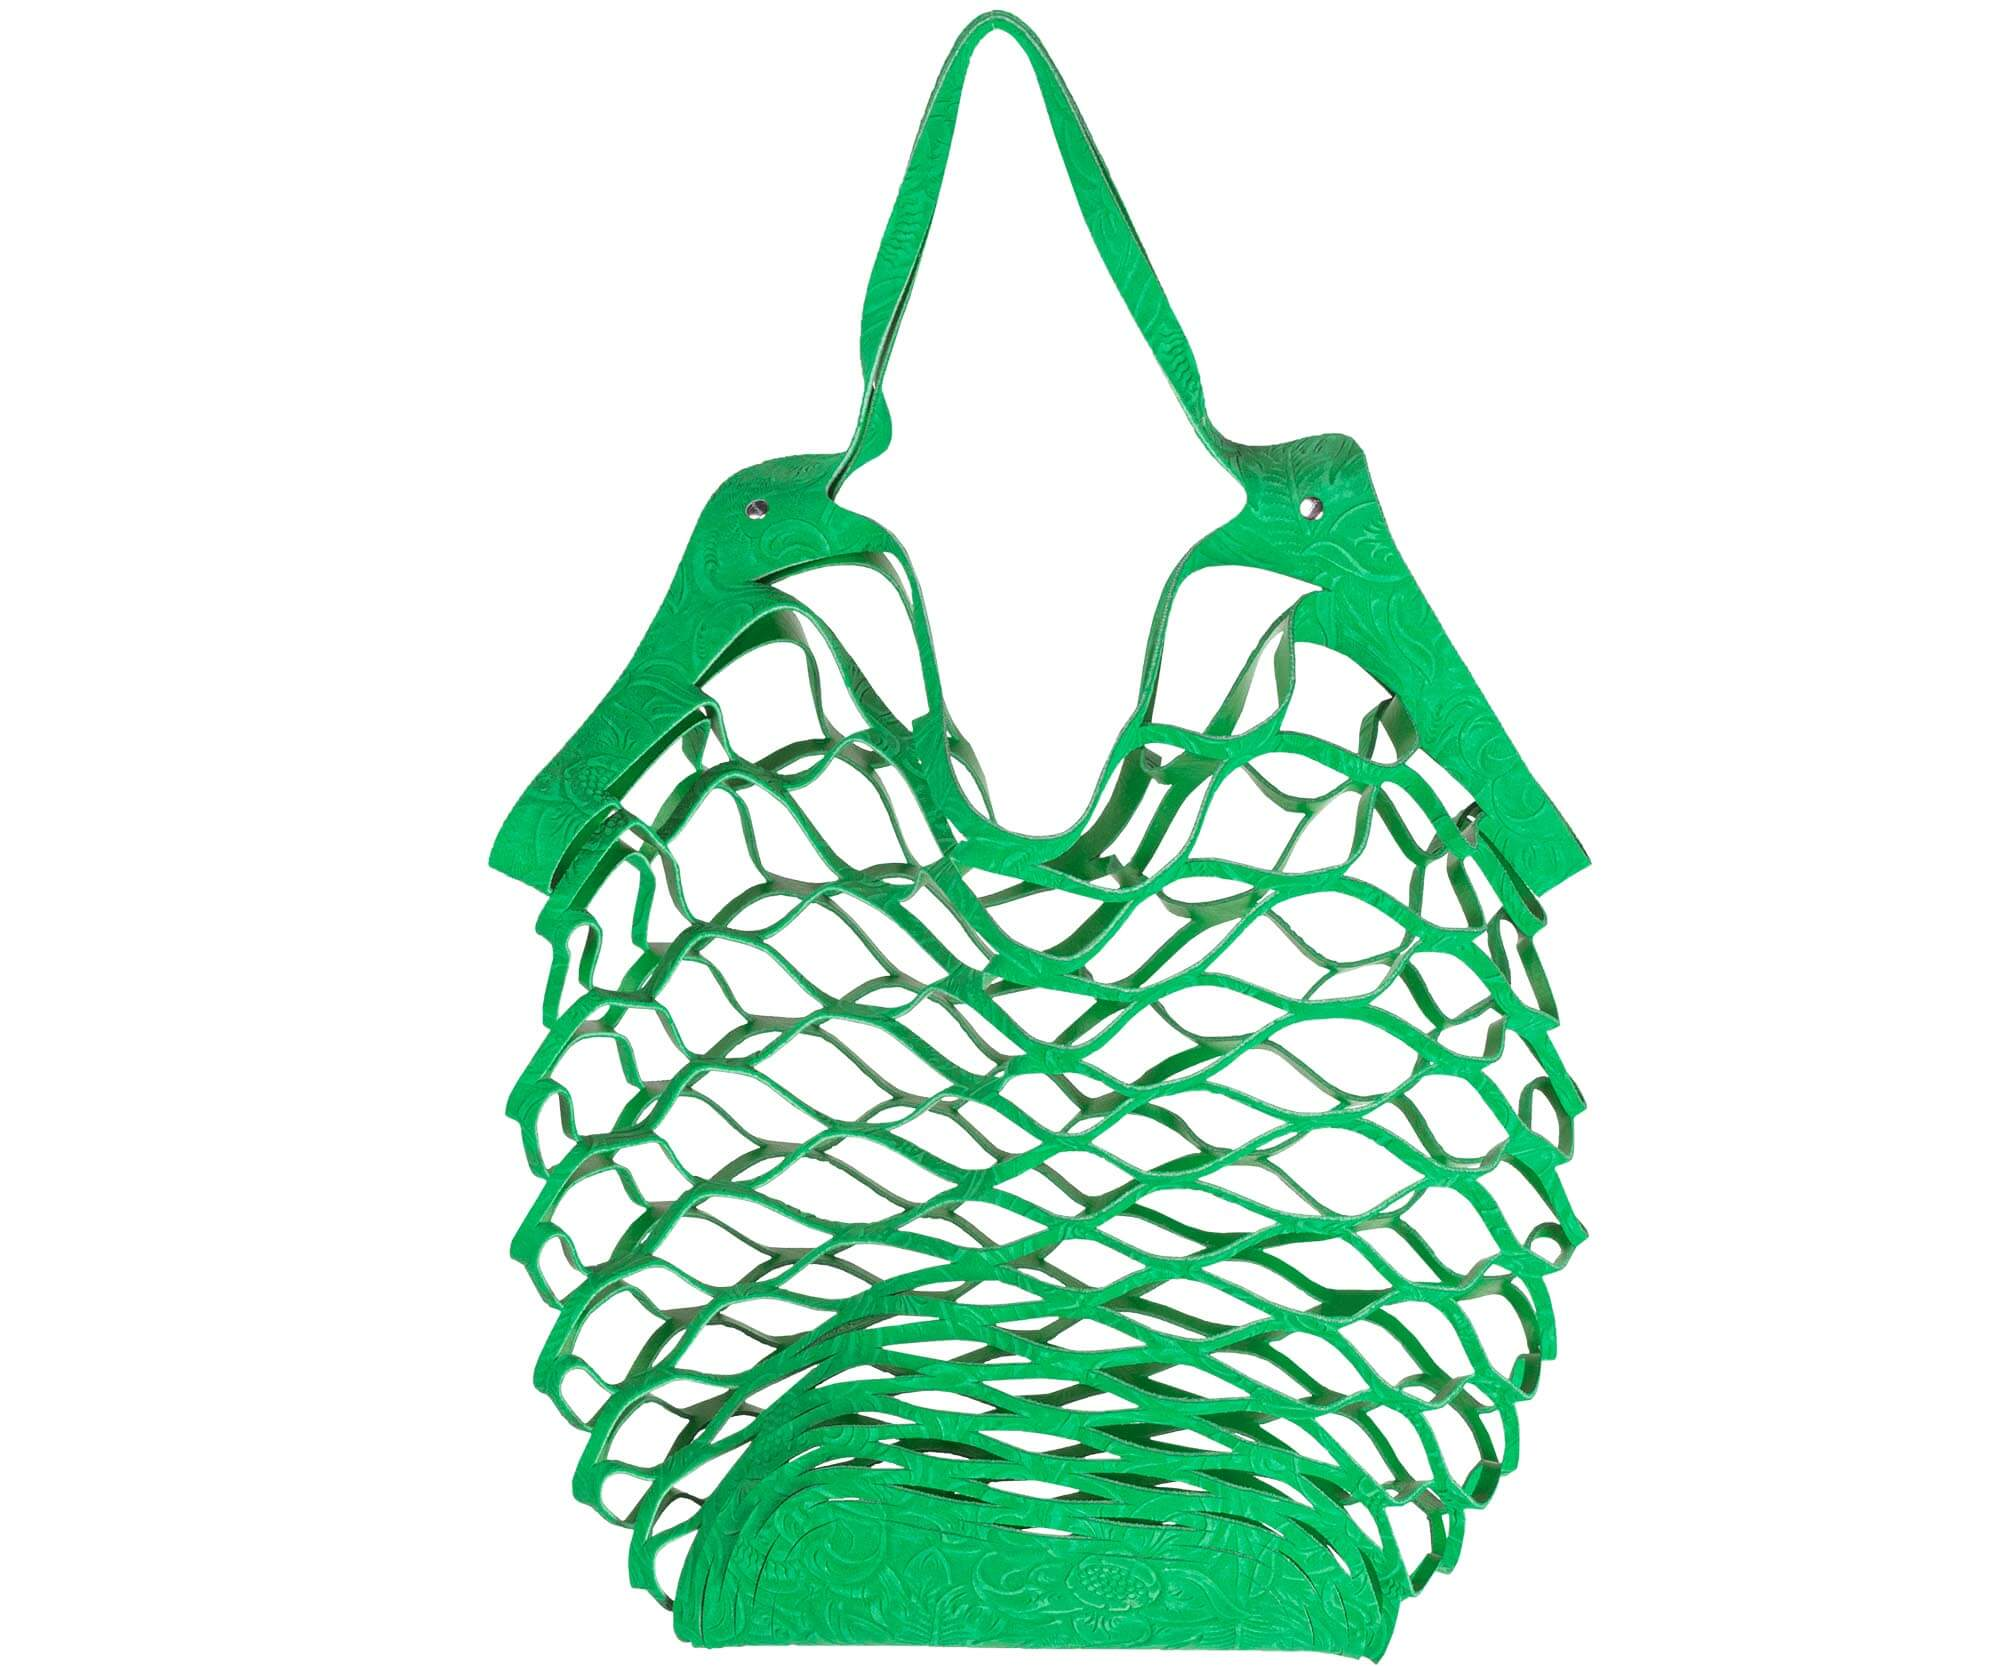 Vanzetti cut out bag green